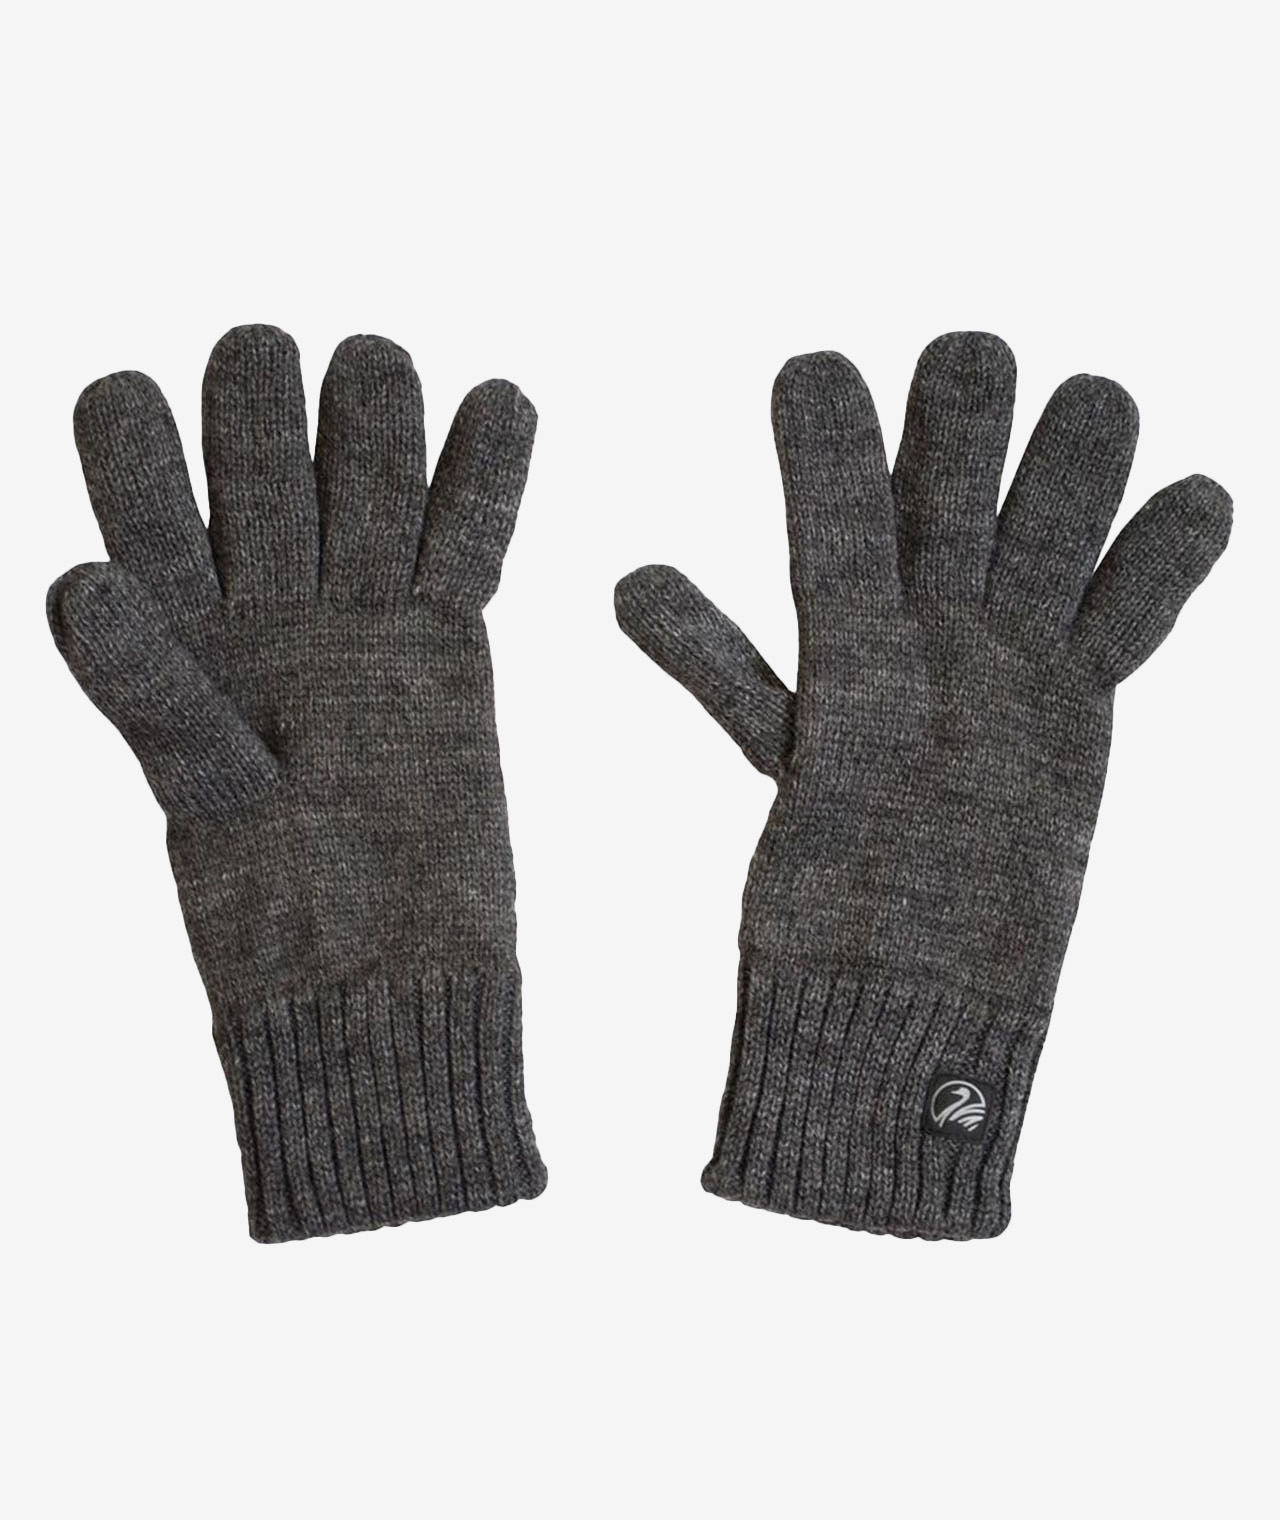 Swanndri Wool Glove with Fleece Lining in Charcoal Marle